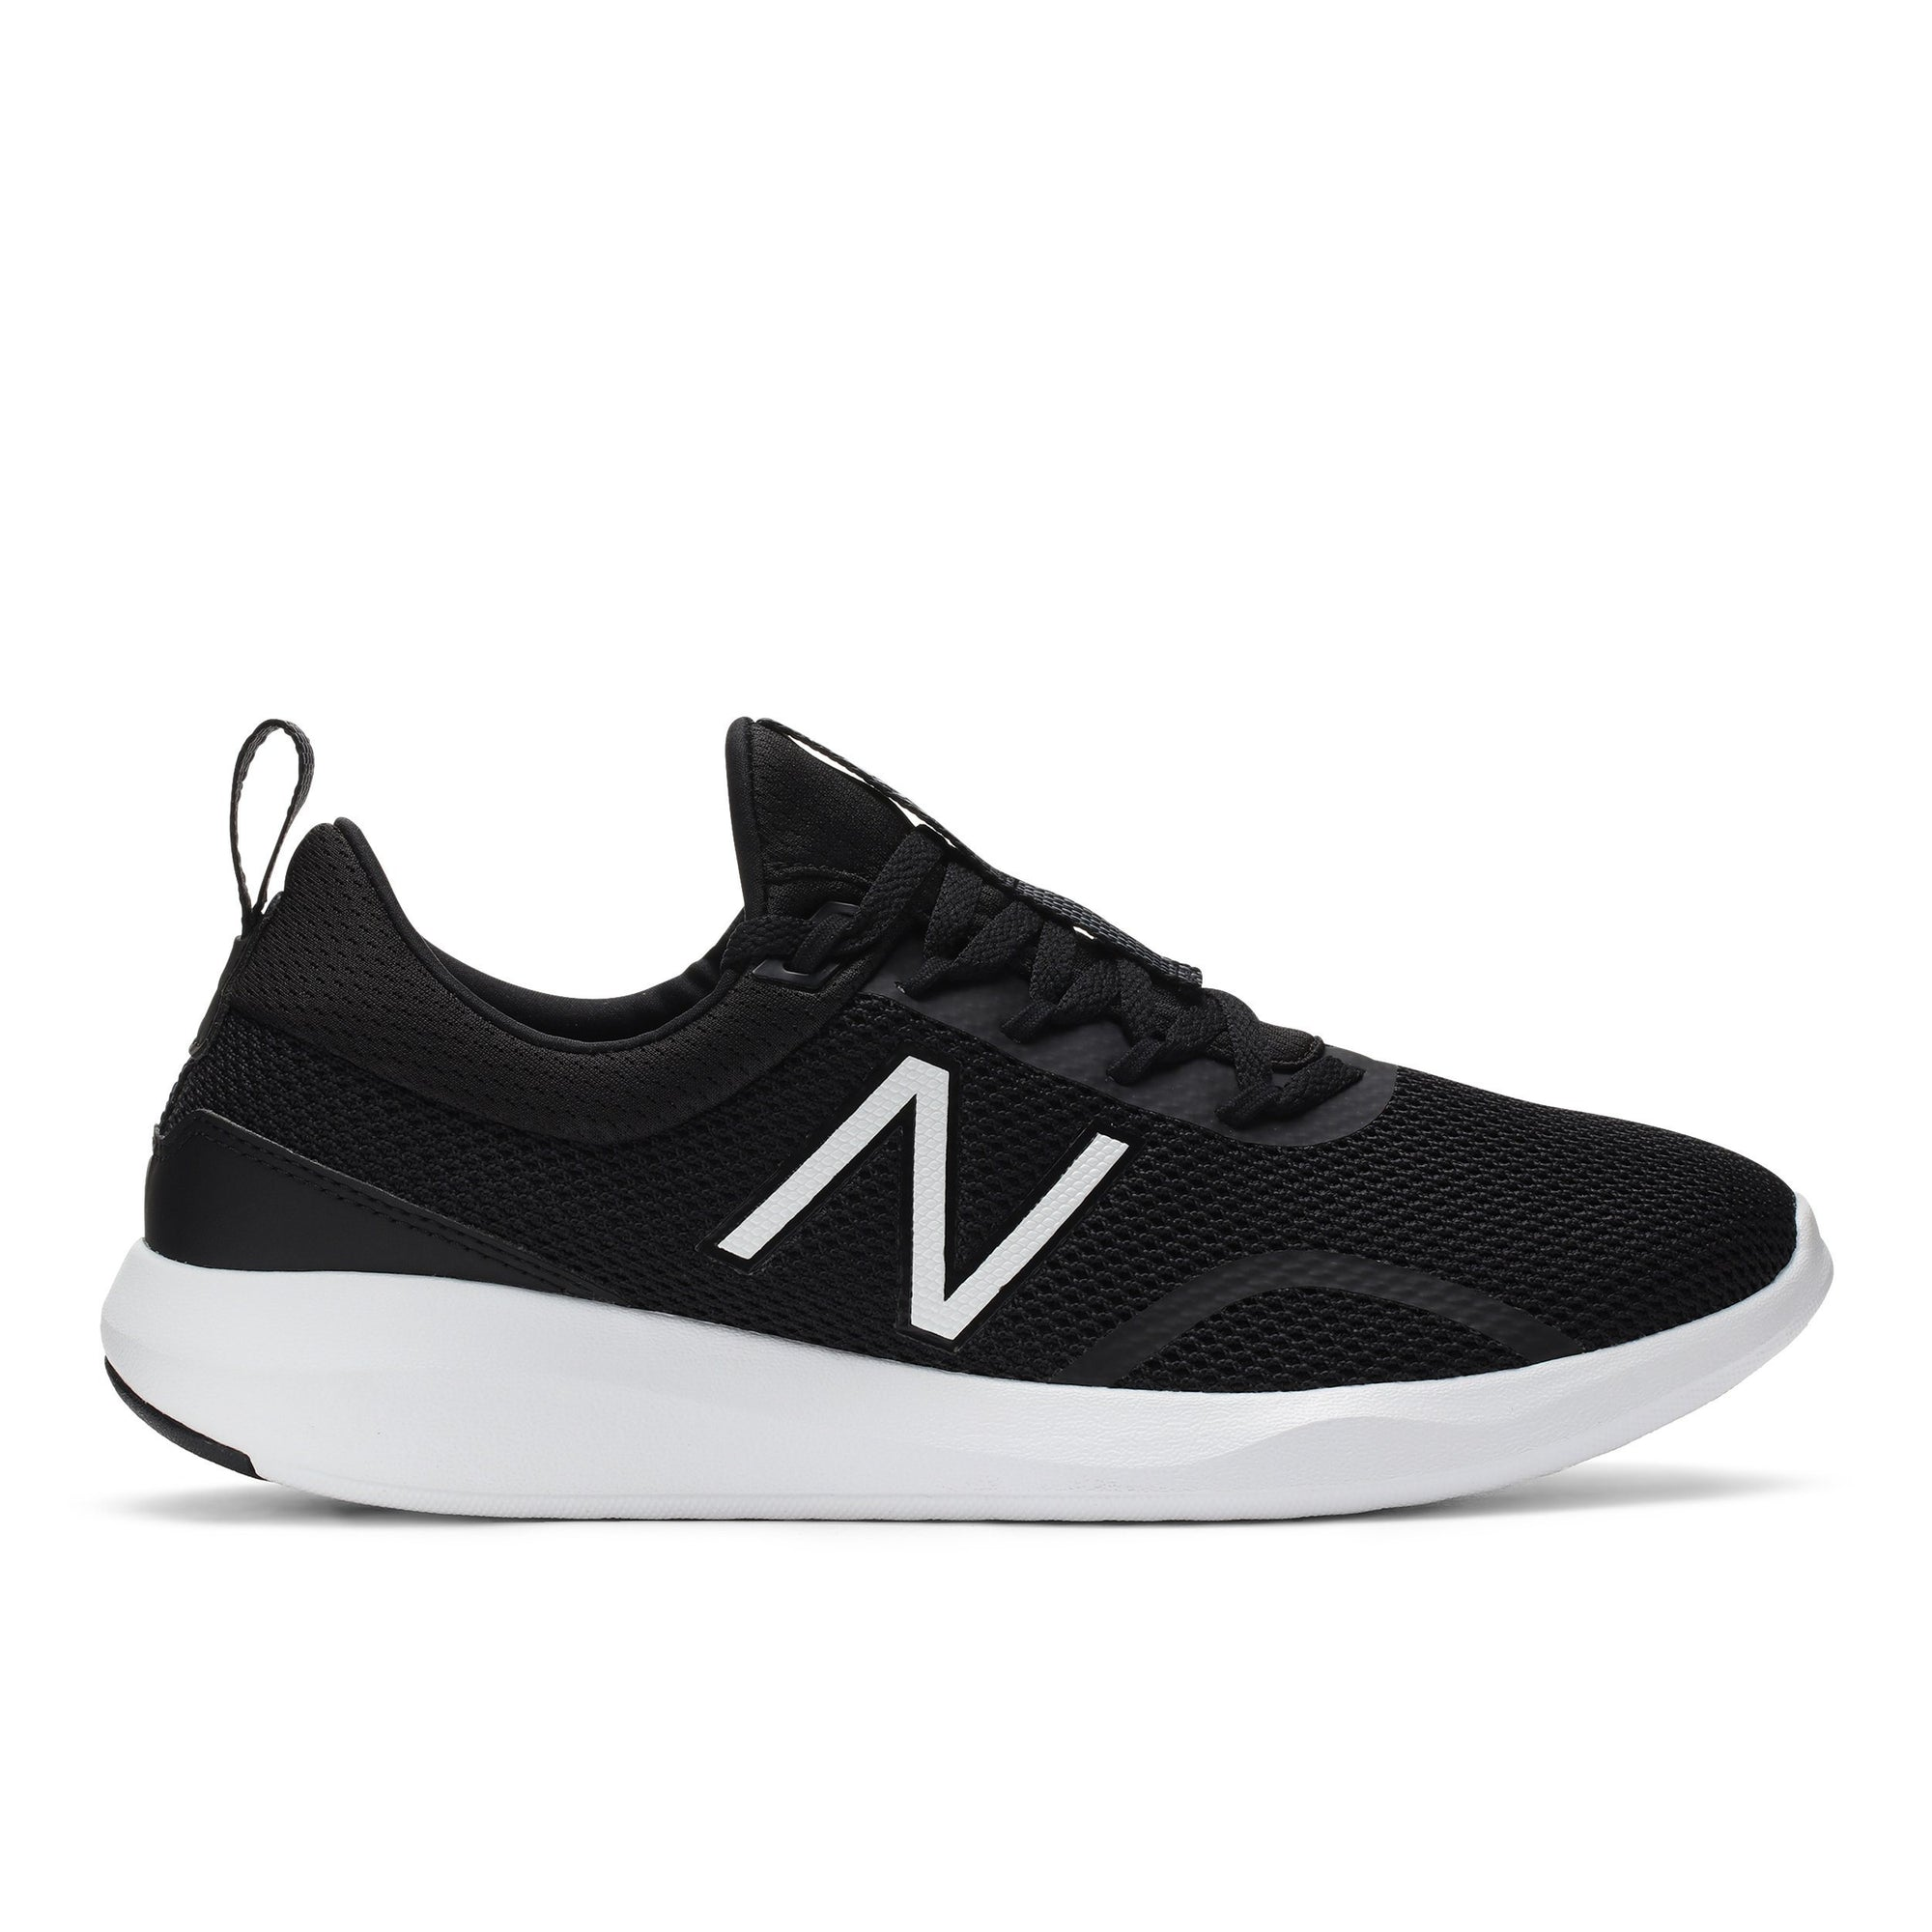 New Balance Mens Coast Ultra - Black/White SP-Footwear-Mens New Balance